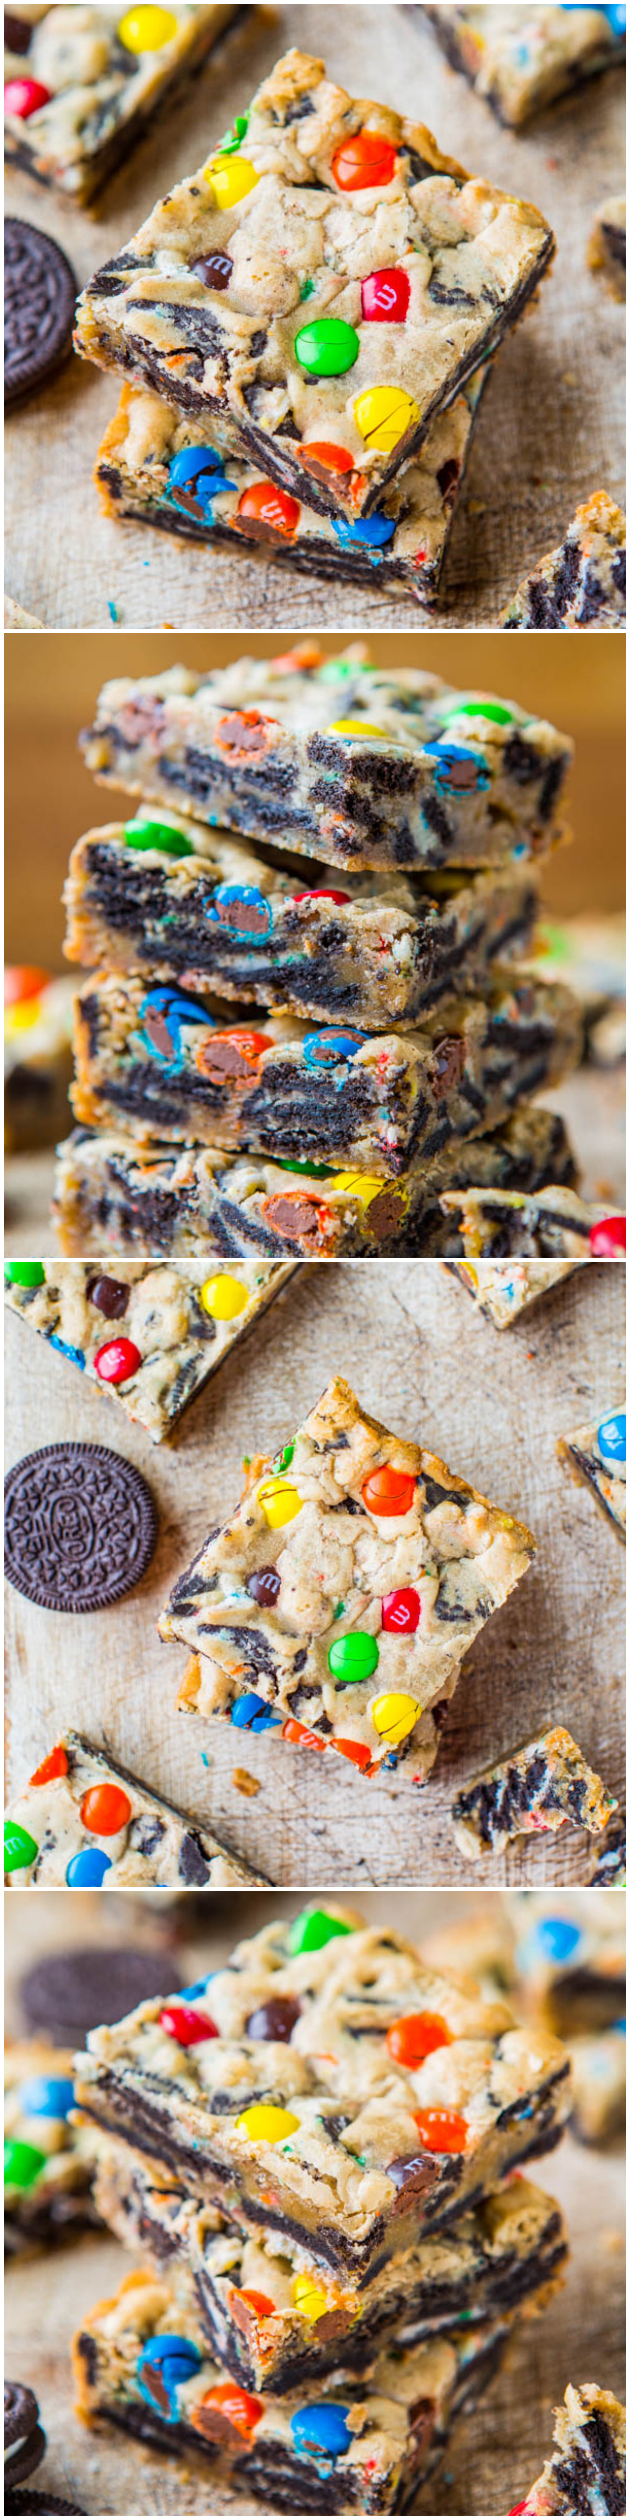 Loaded M&M Oreo Cookie Bars: Easy Mixer-Free Recipe at averiecooks.com